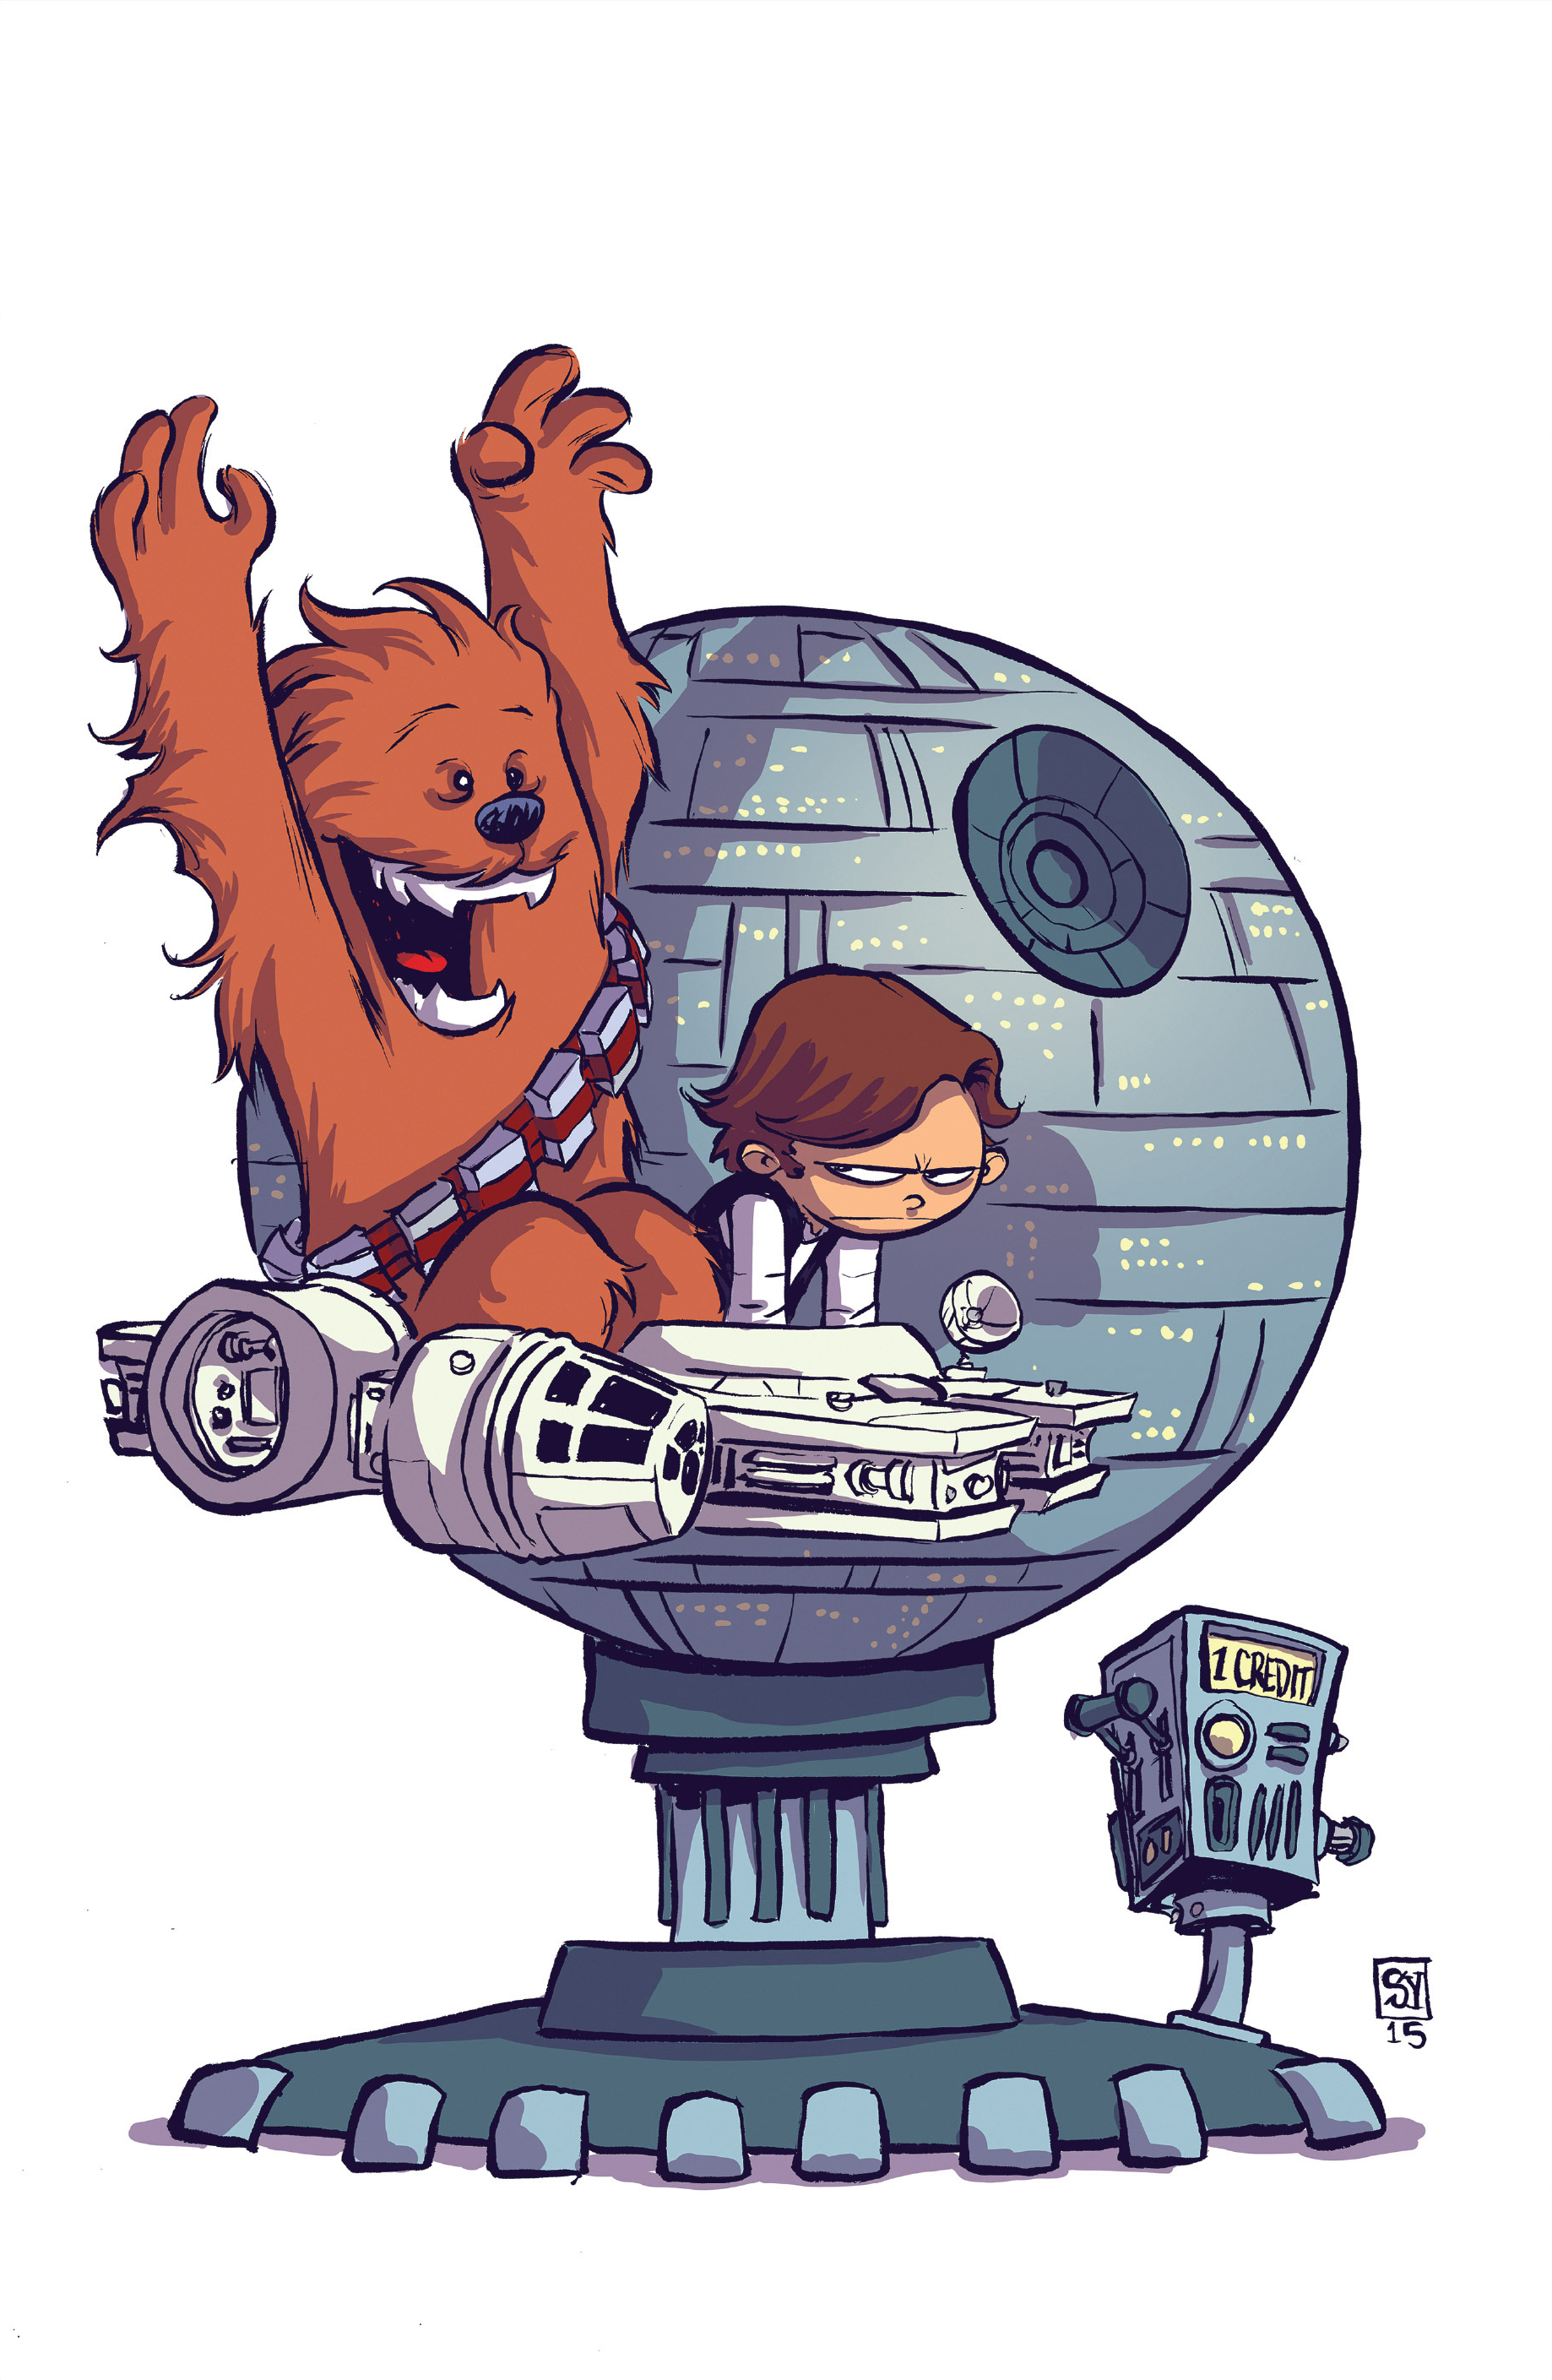 Chewbacca clipart chewbaca. Image young variant textless